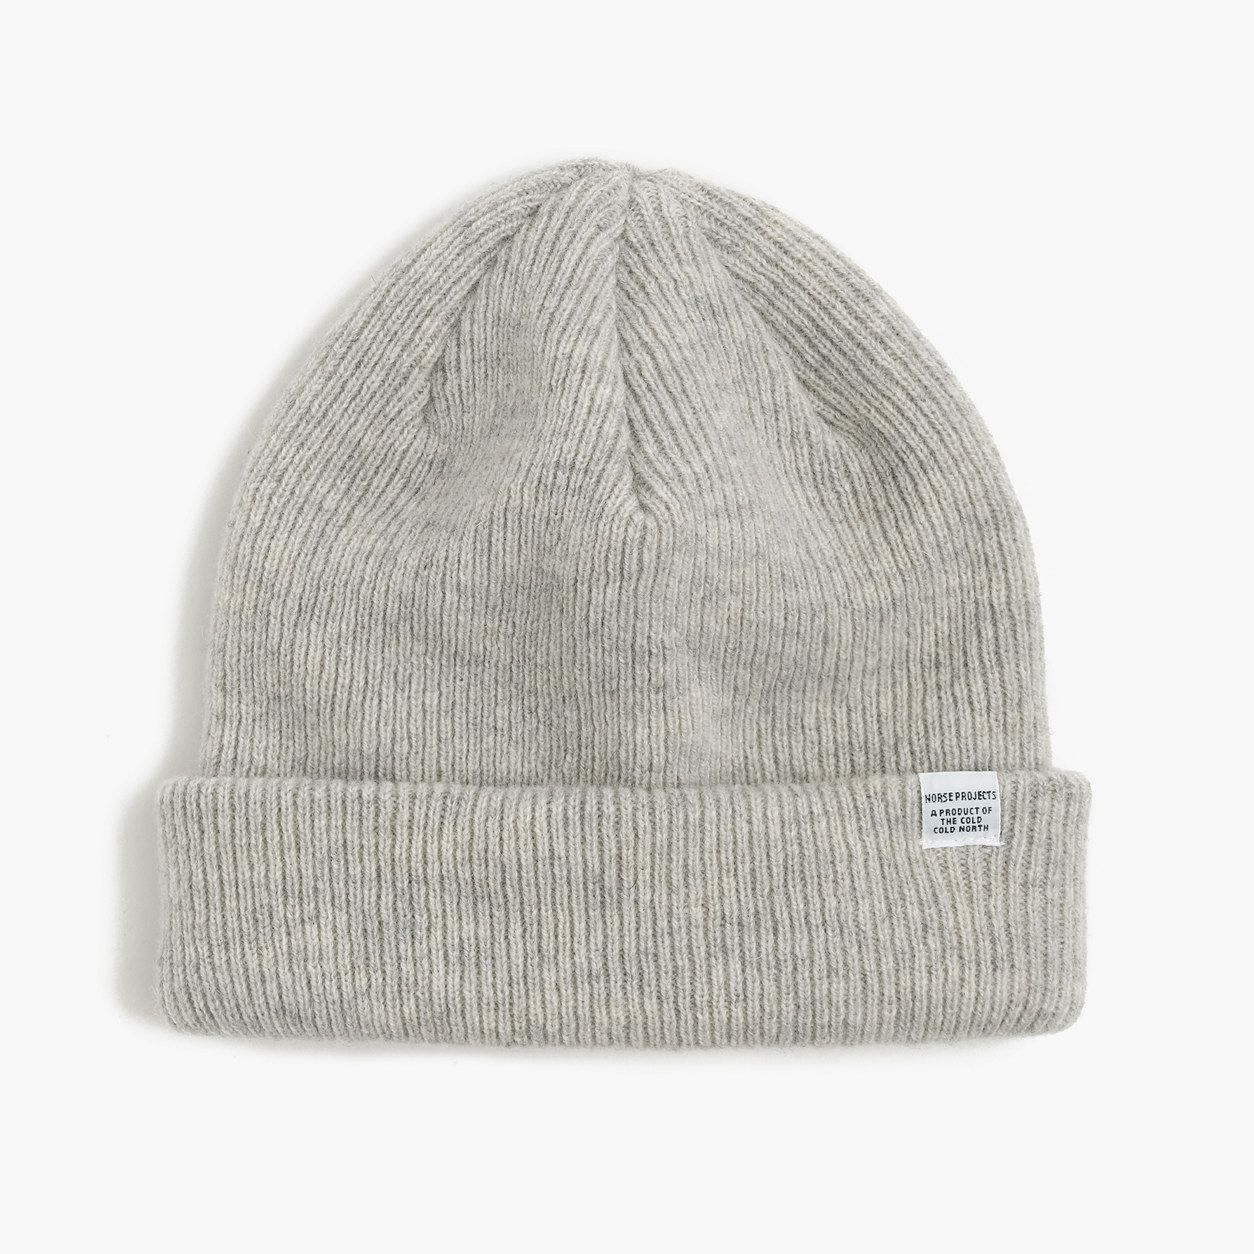 J.Crew Mens Norse Projects Lambswool Beanie  f43072fa0e9